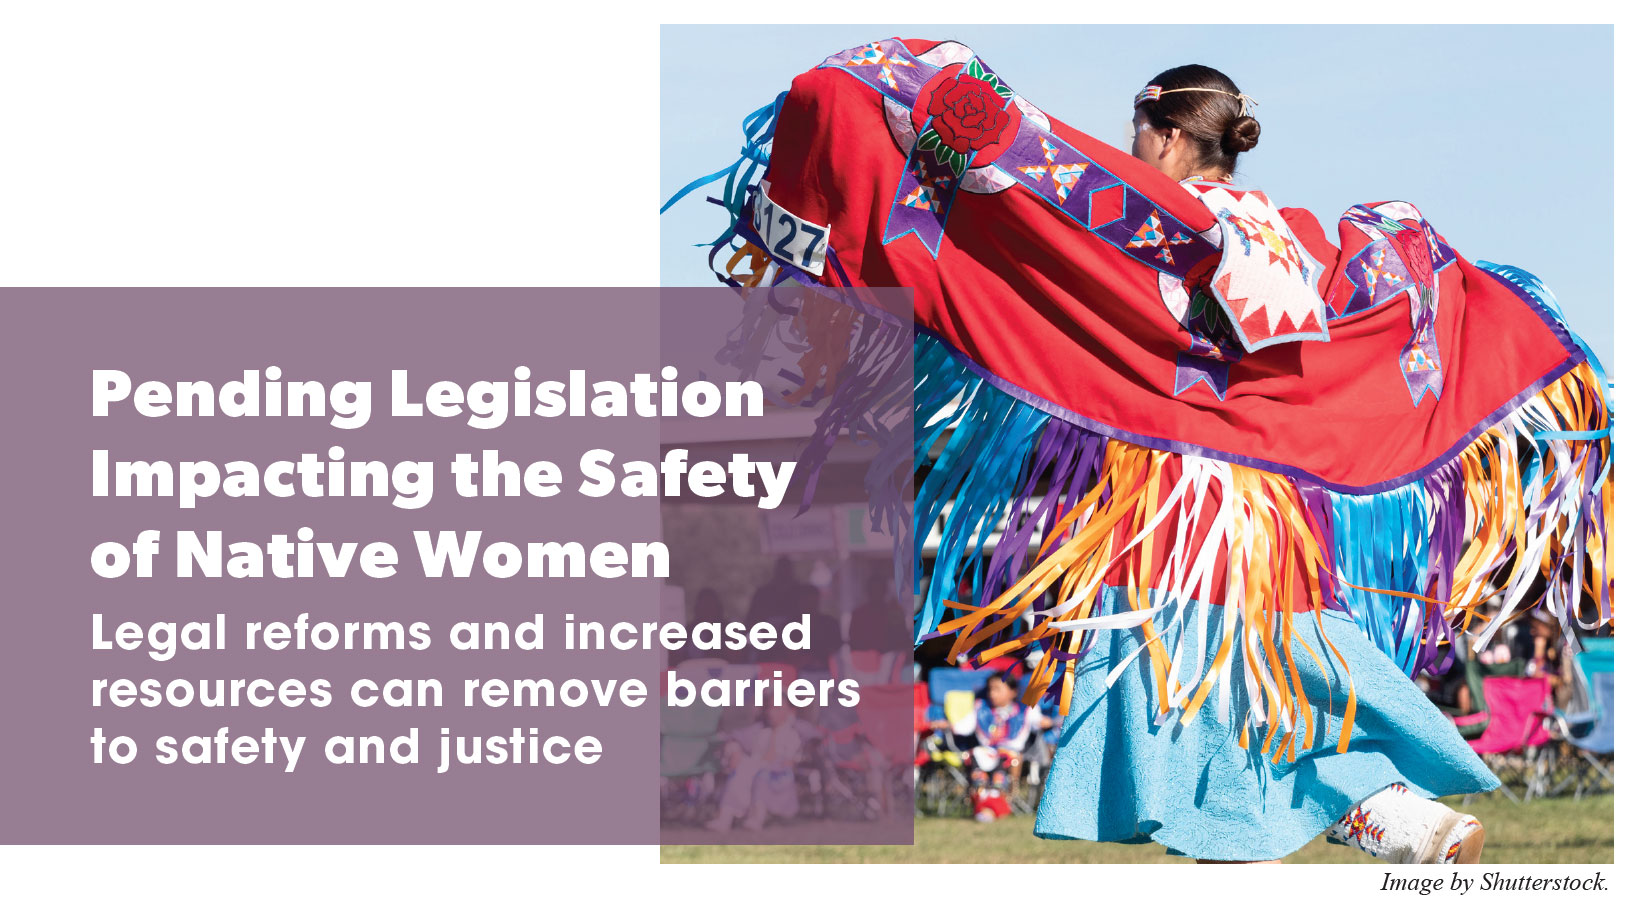 Pending Legislation Impacting the Safety of Native Women